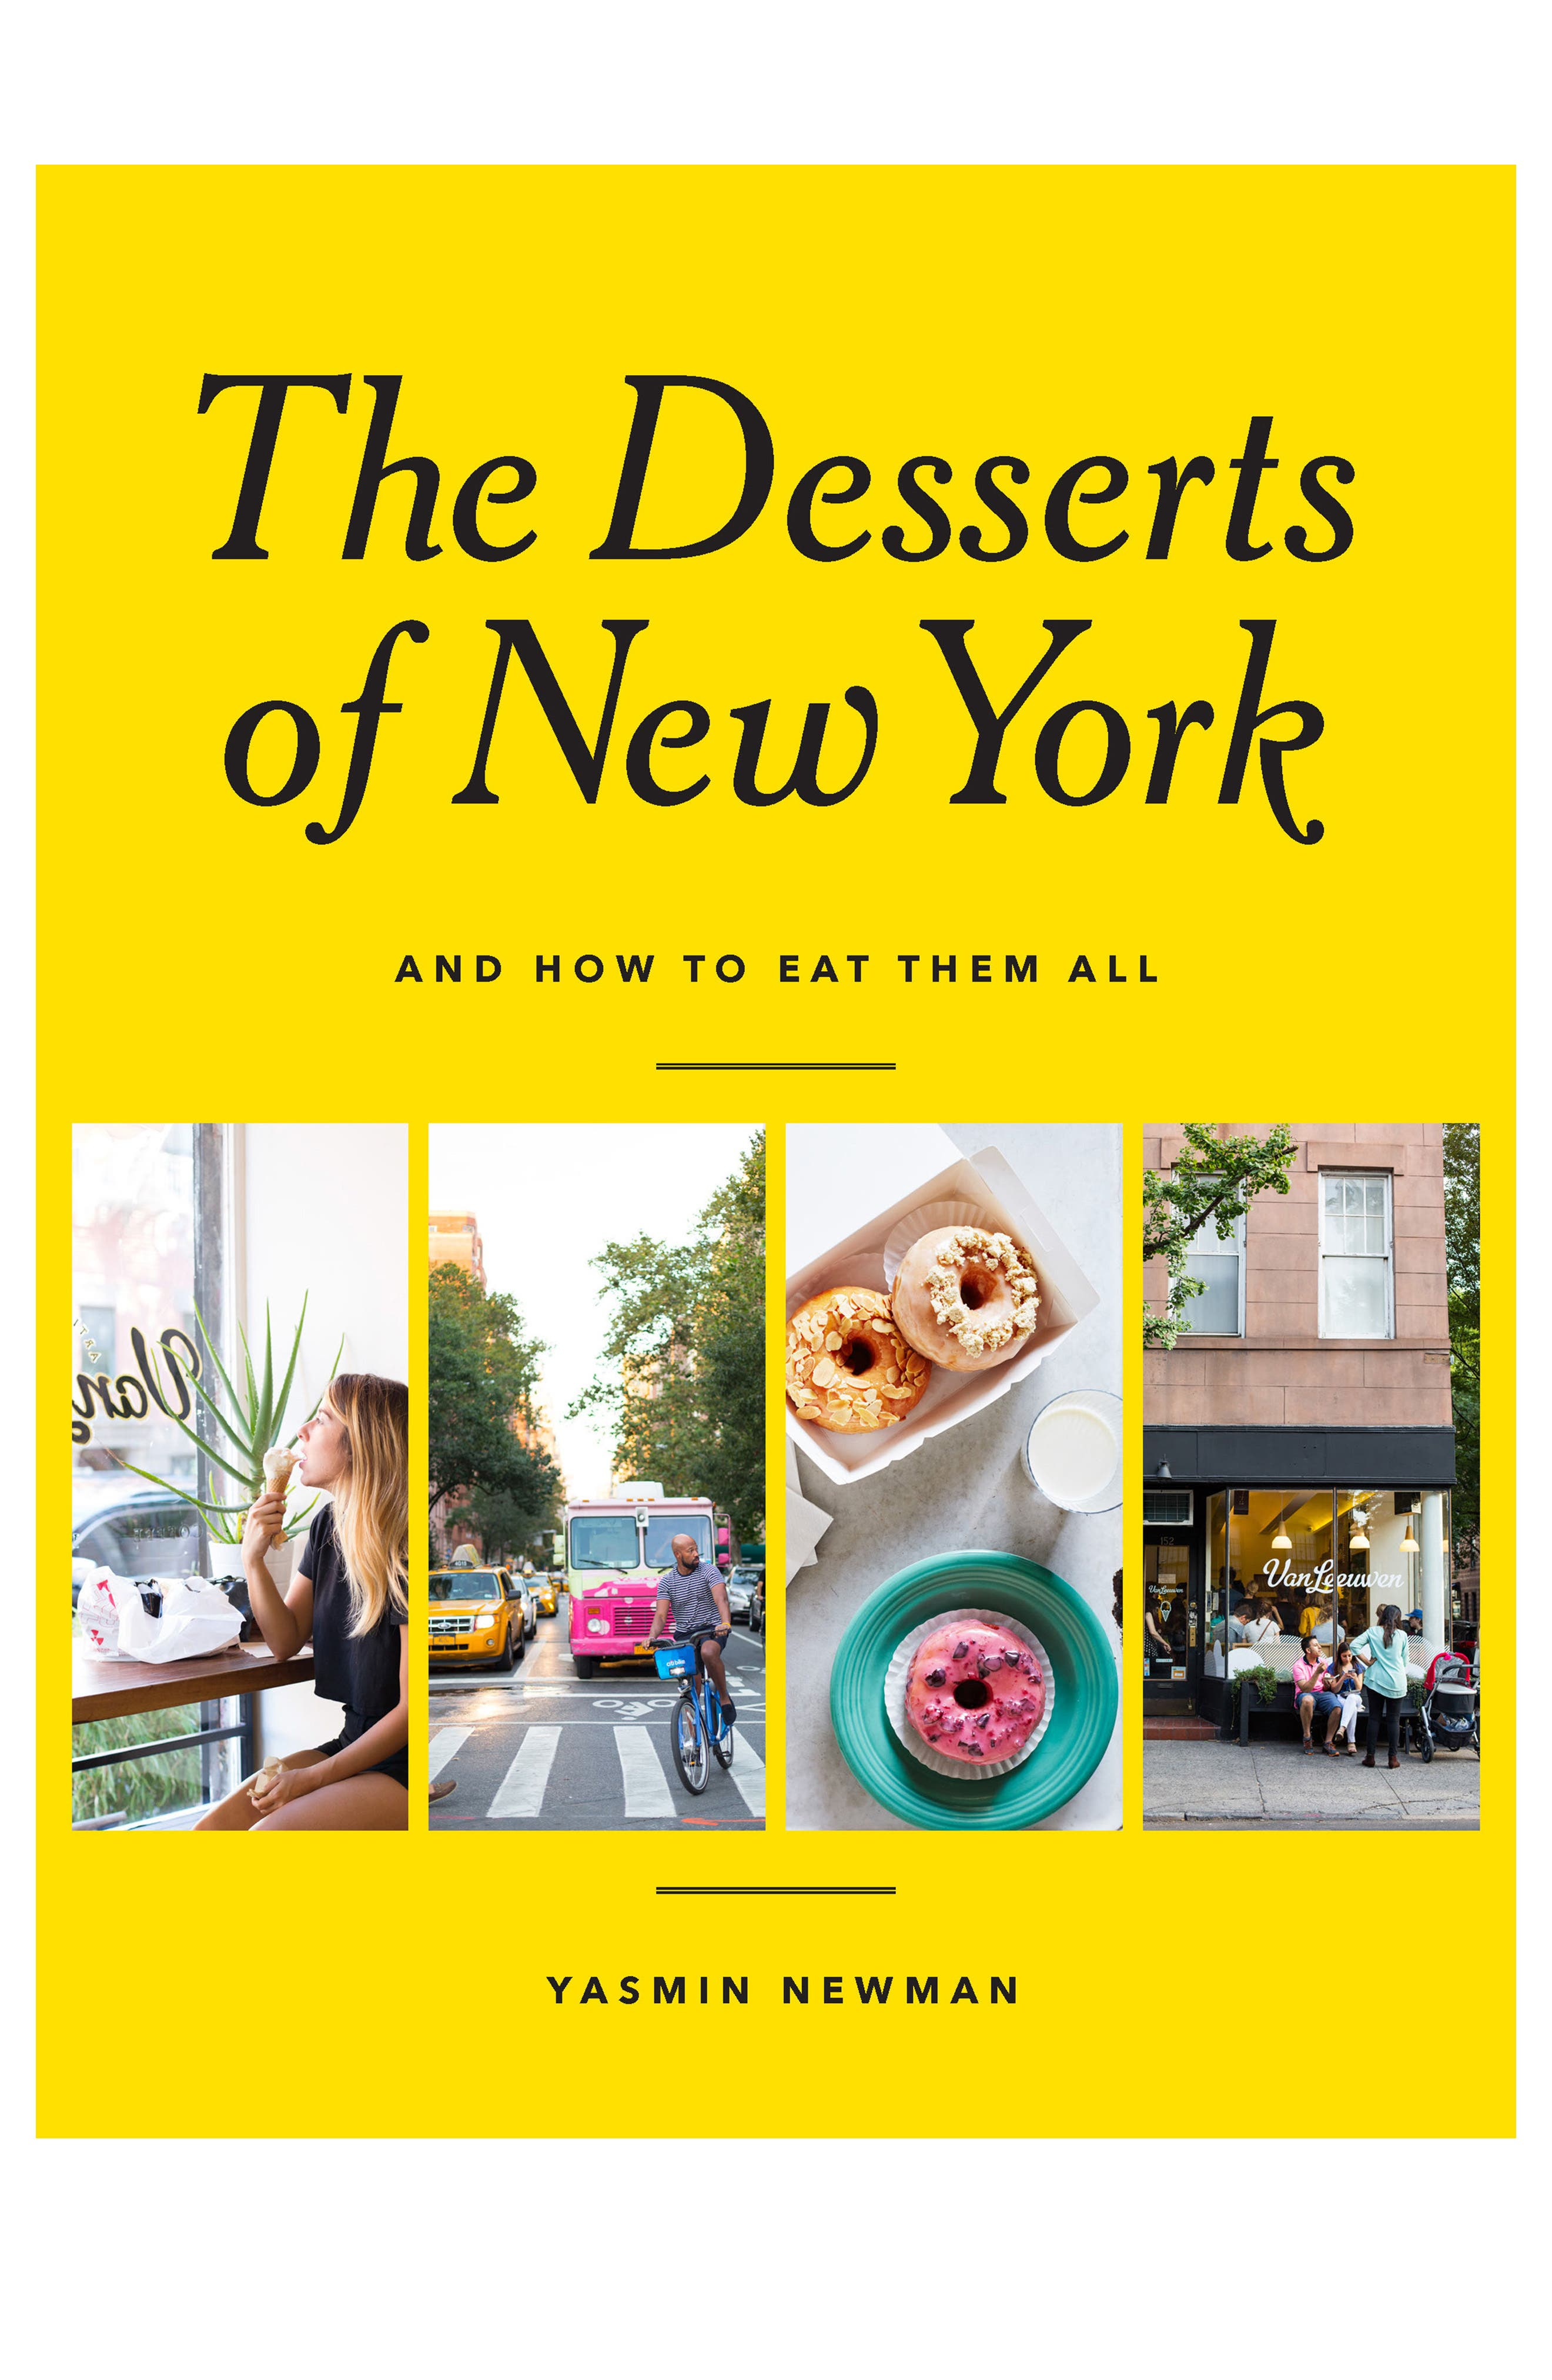 The Desserts of New York (And How to Eat Them All) Book,                         Main,                         color, Yellow